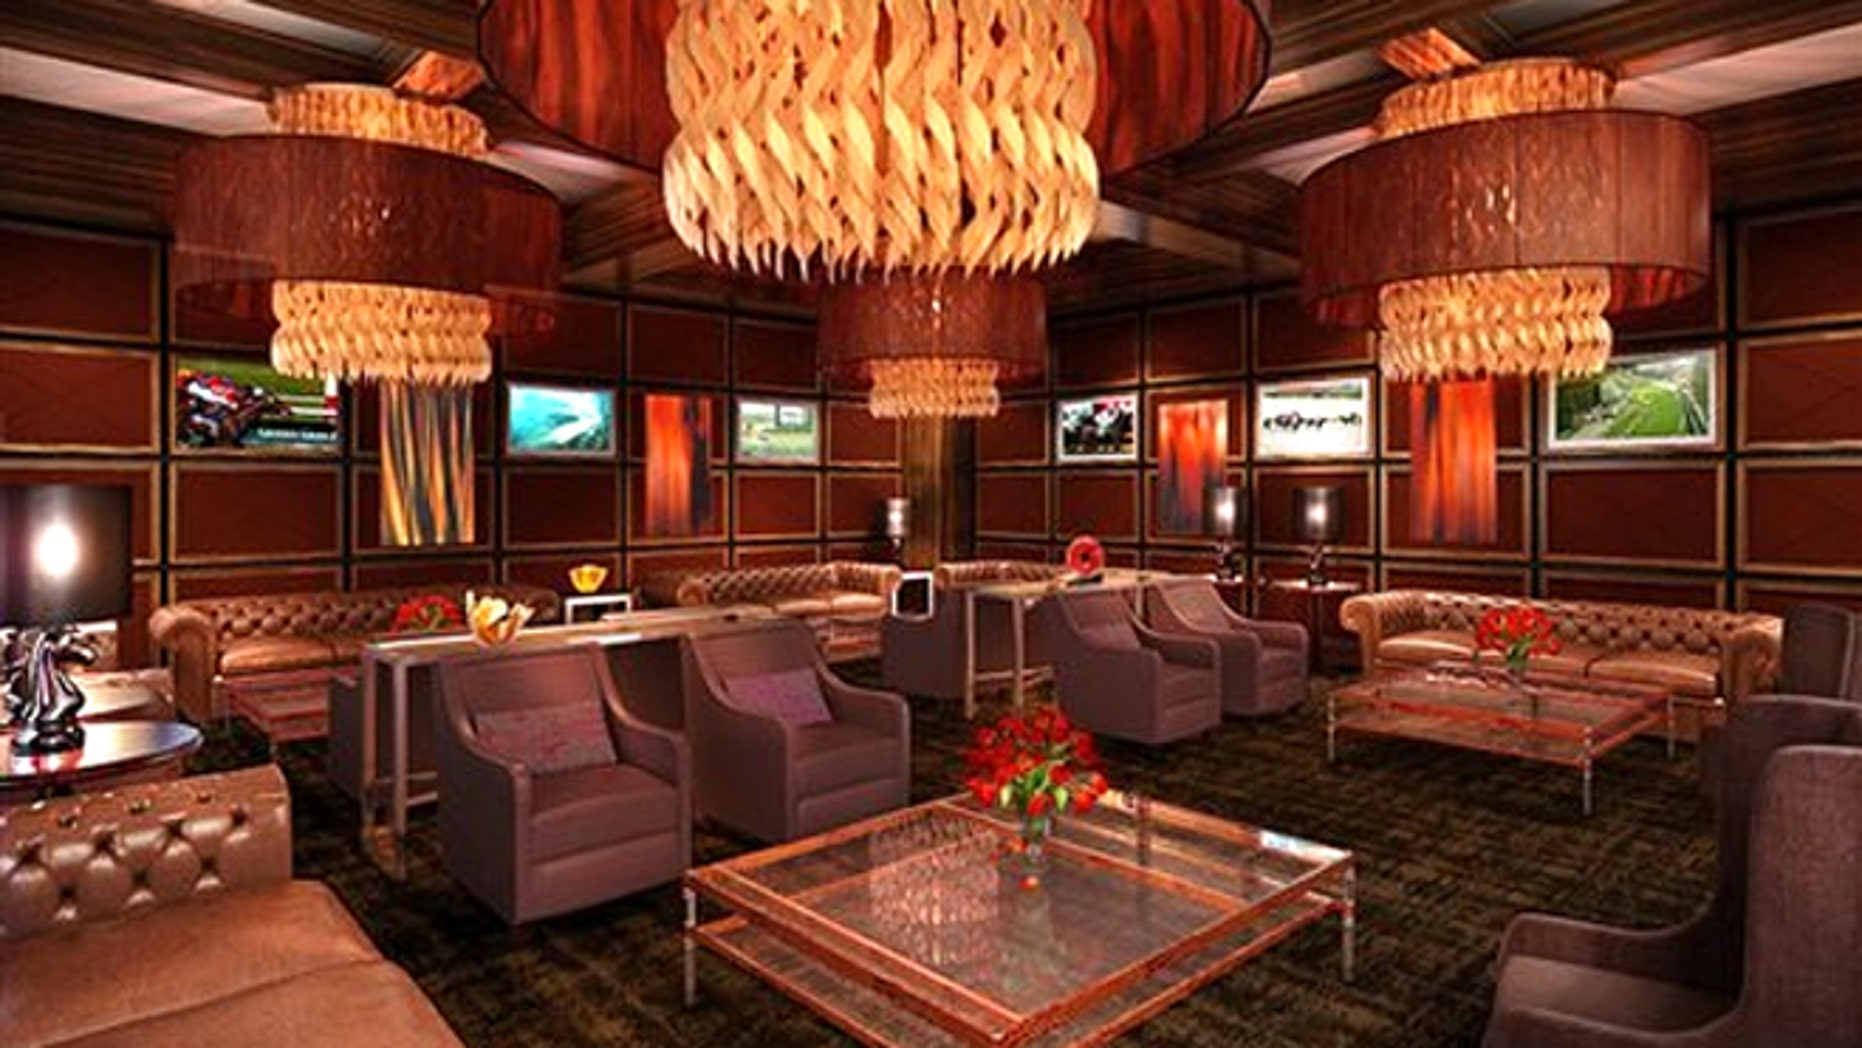 Churchill Downs' clubhouse has a new ultra-exclusive section called The Mansion, an ultra-exclusive area that will be available for Kentucky Derby fans starting in 2013.